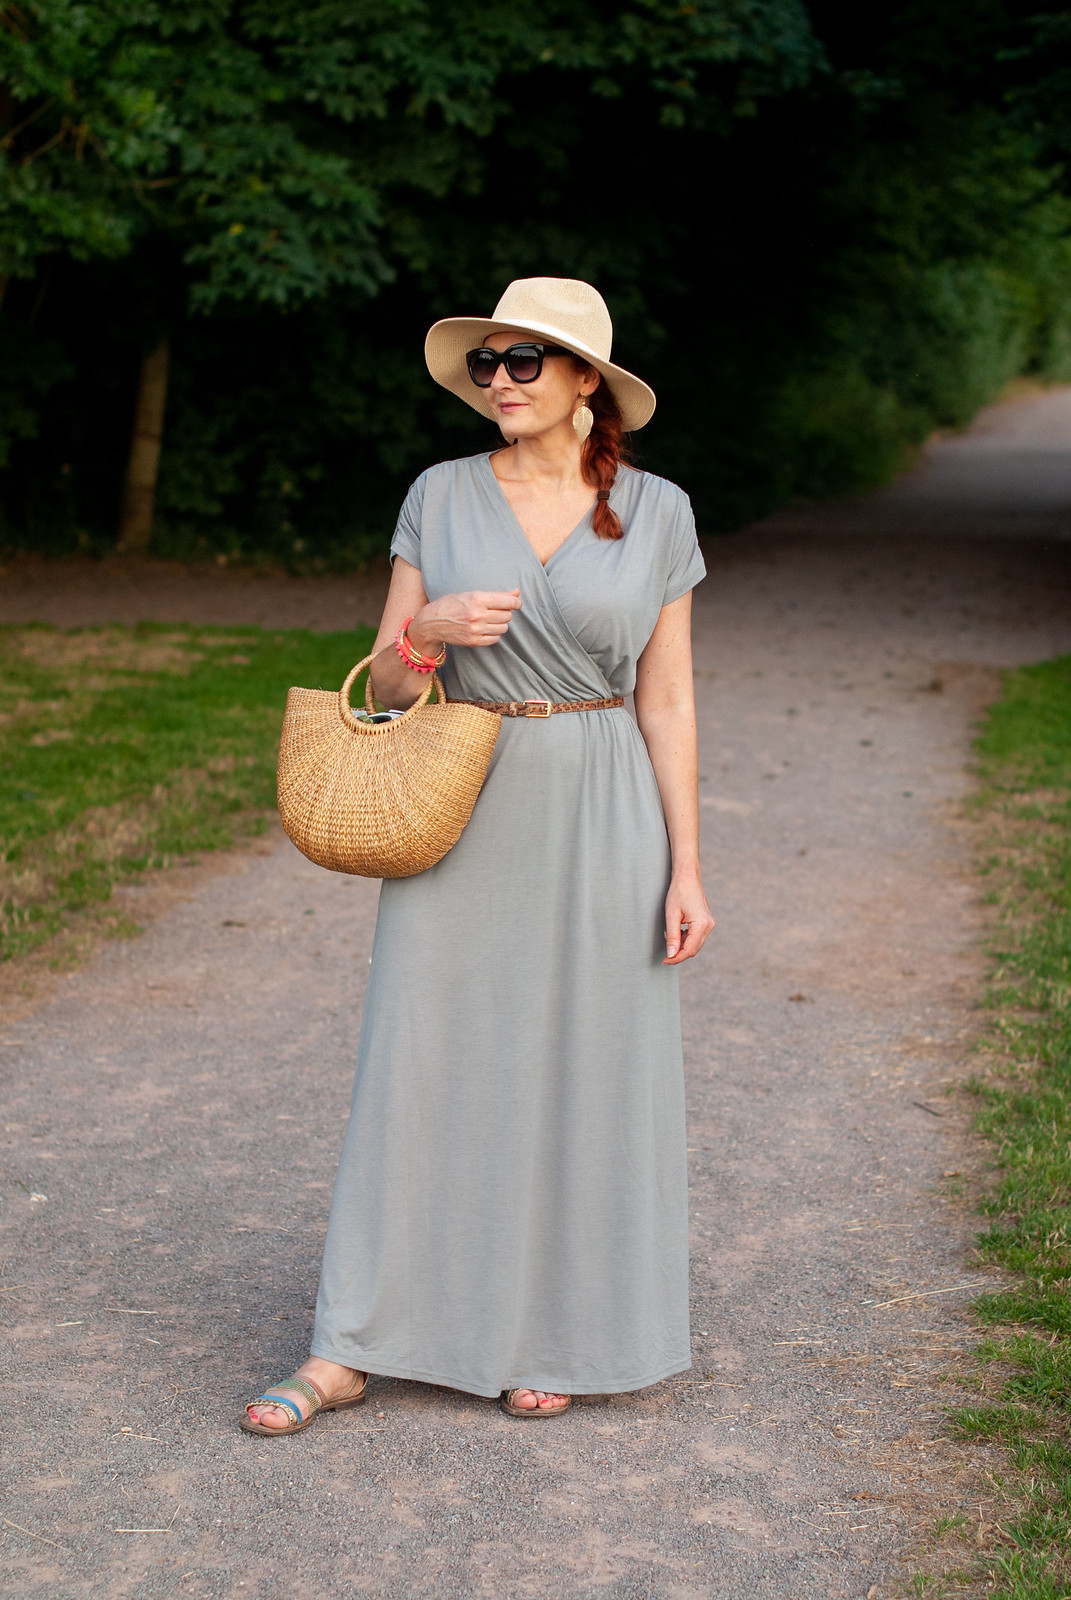 How to Keep Cool in the Summer and Still Cover Up \ grey Hot Squash maxi dress with CoolFresh fabric \ floppy straw hat \ straw basket bag \ black cat eye sunglasses \ strappy flat sandals | Not Dressed As Lamb, over 40 fashion